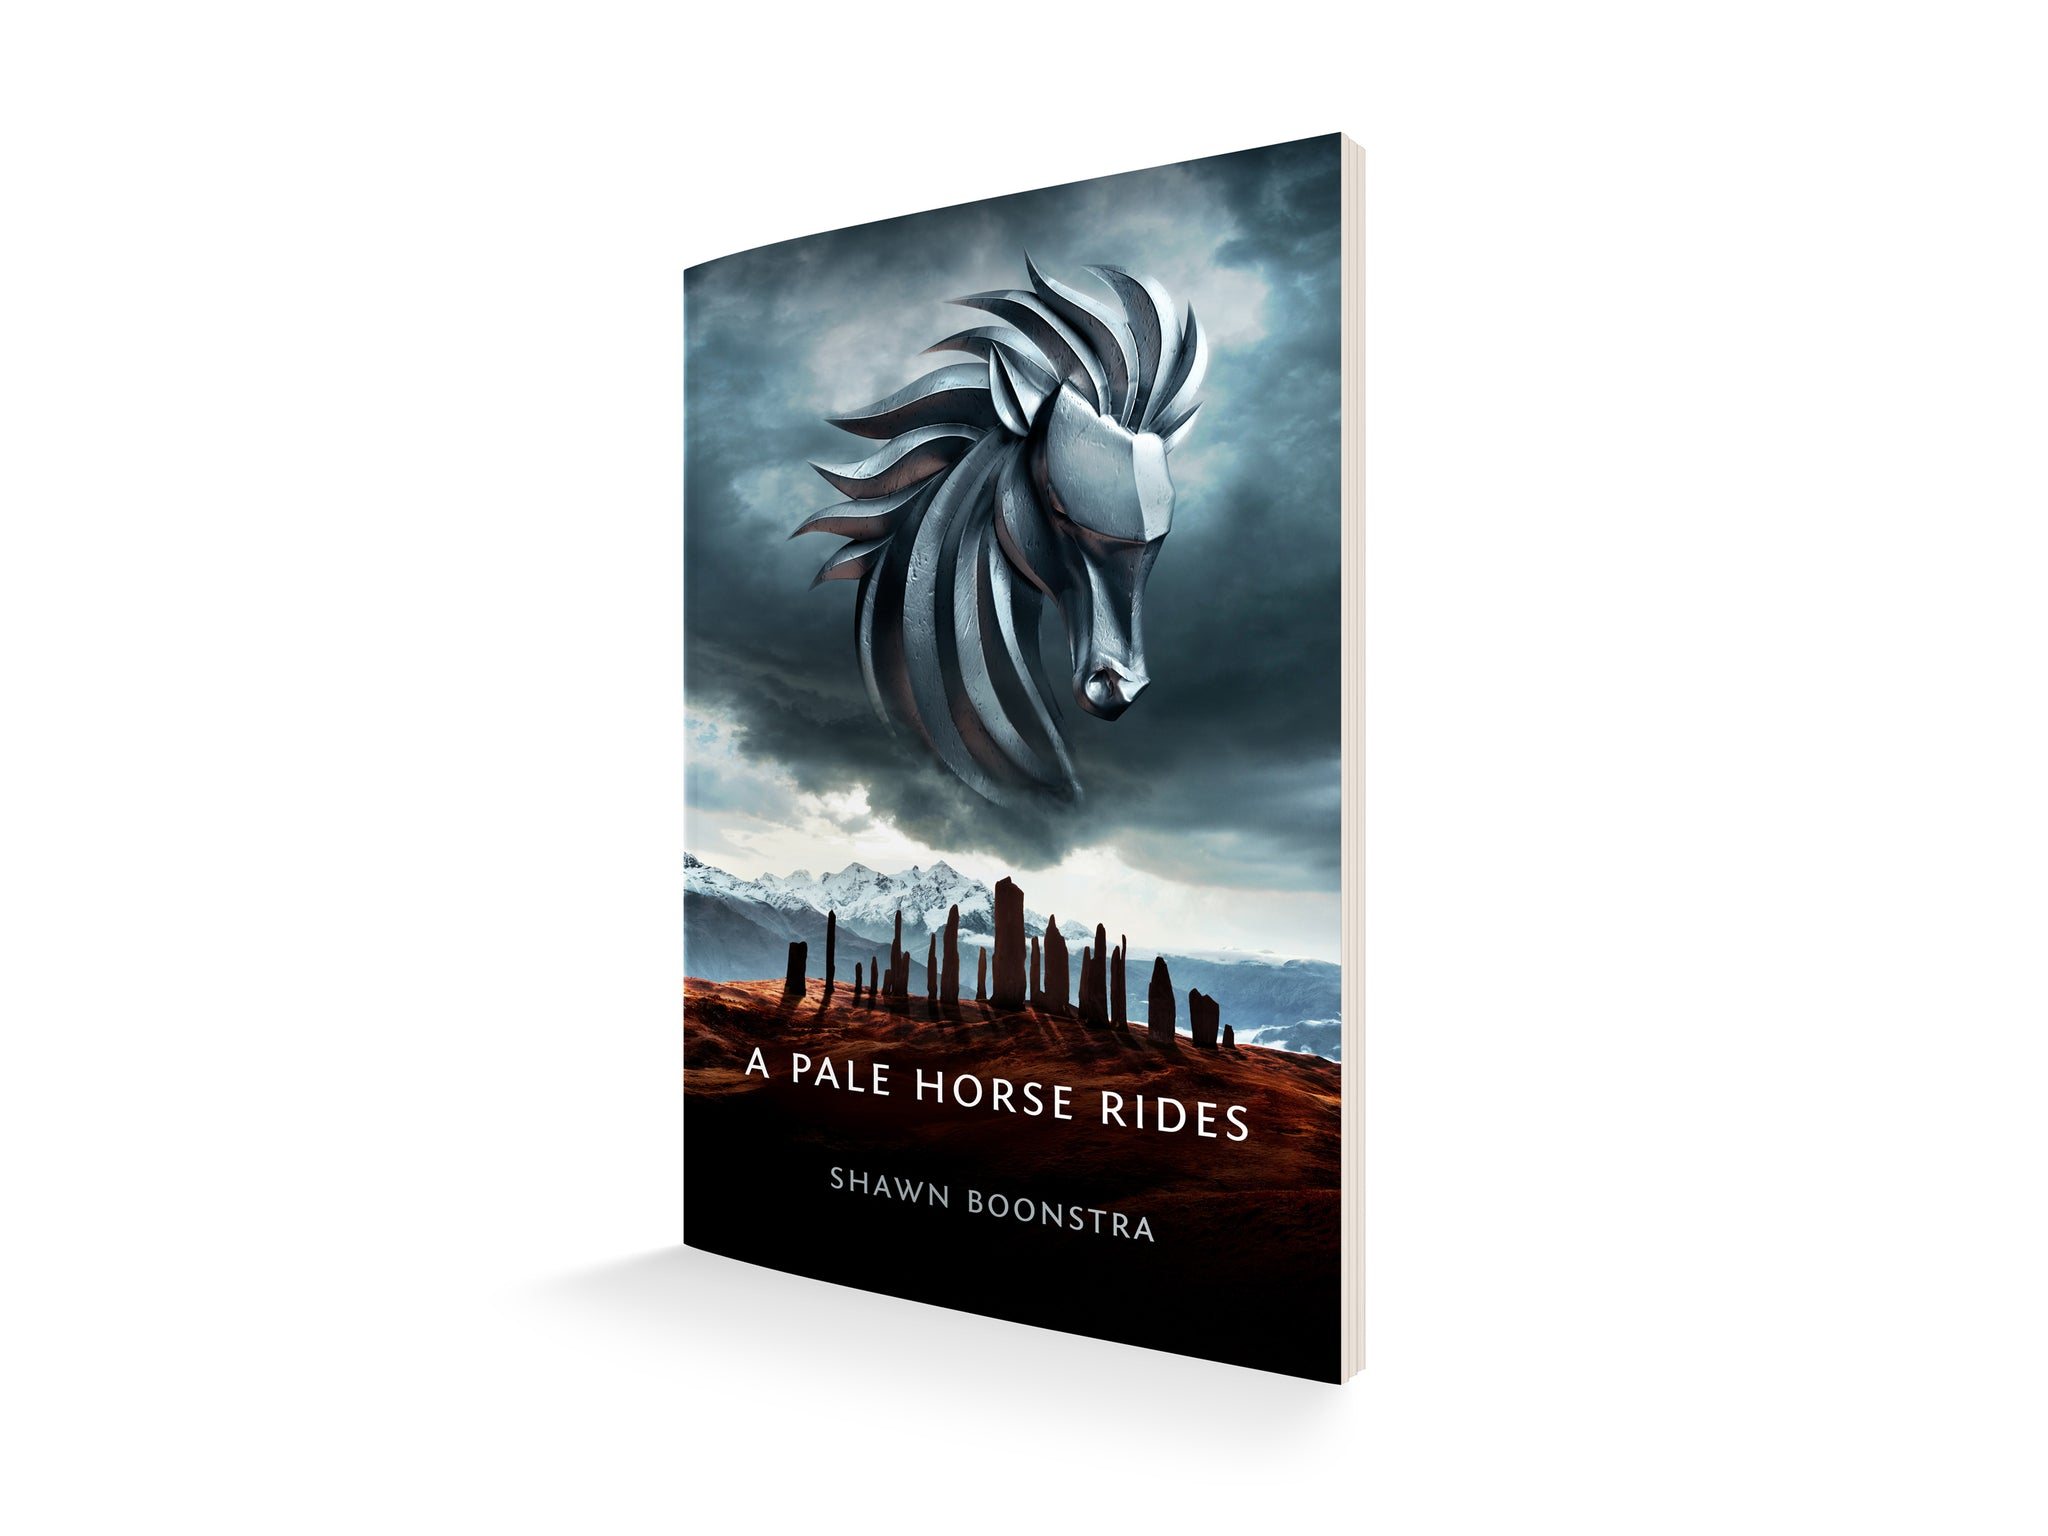 A Pale Horse Rides - Book by Shawn Boonstra